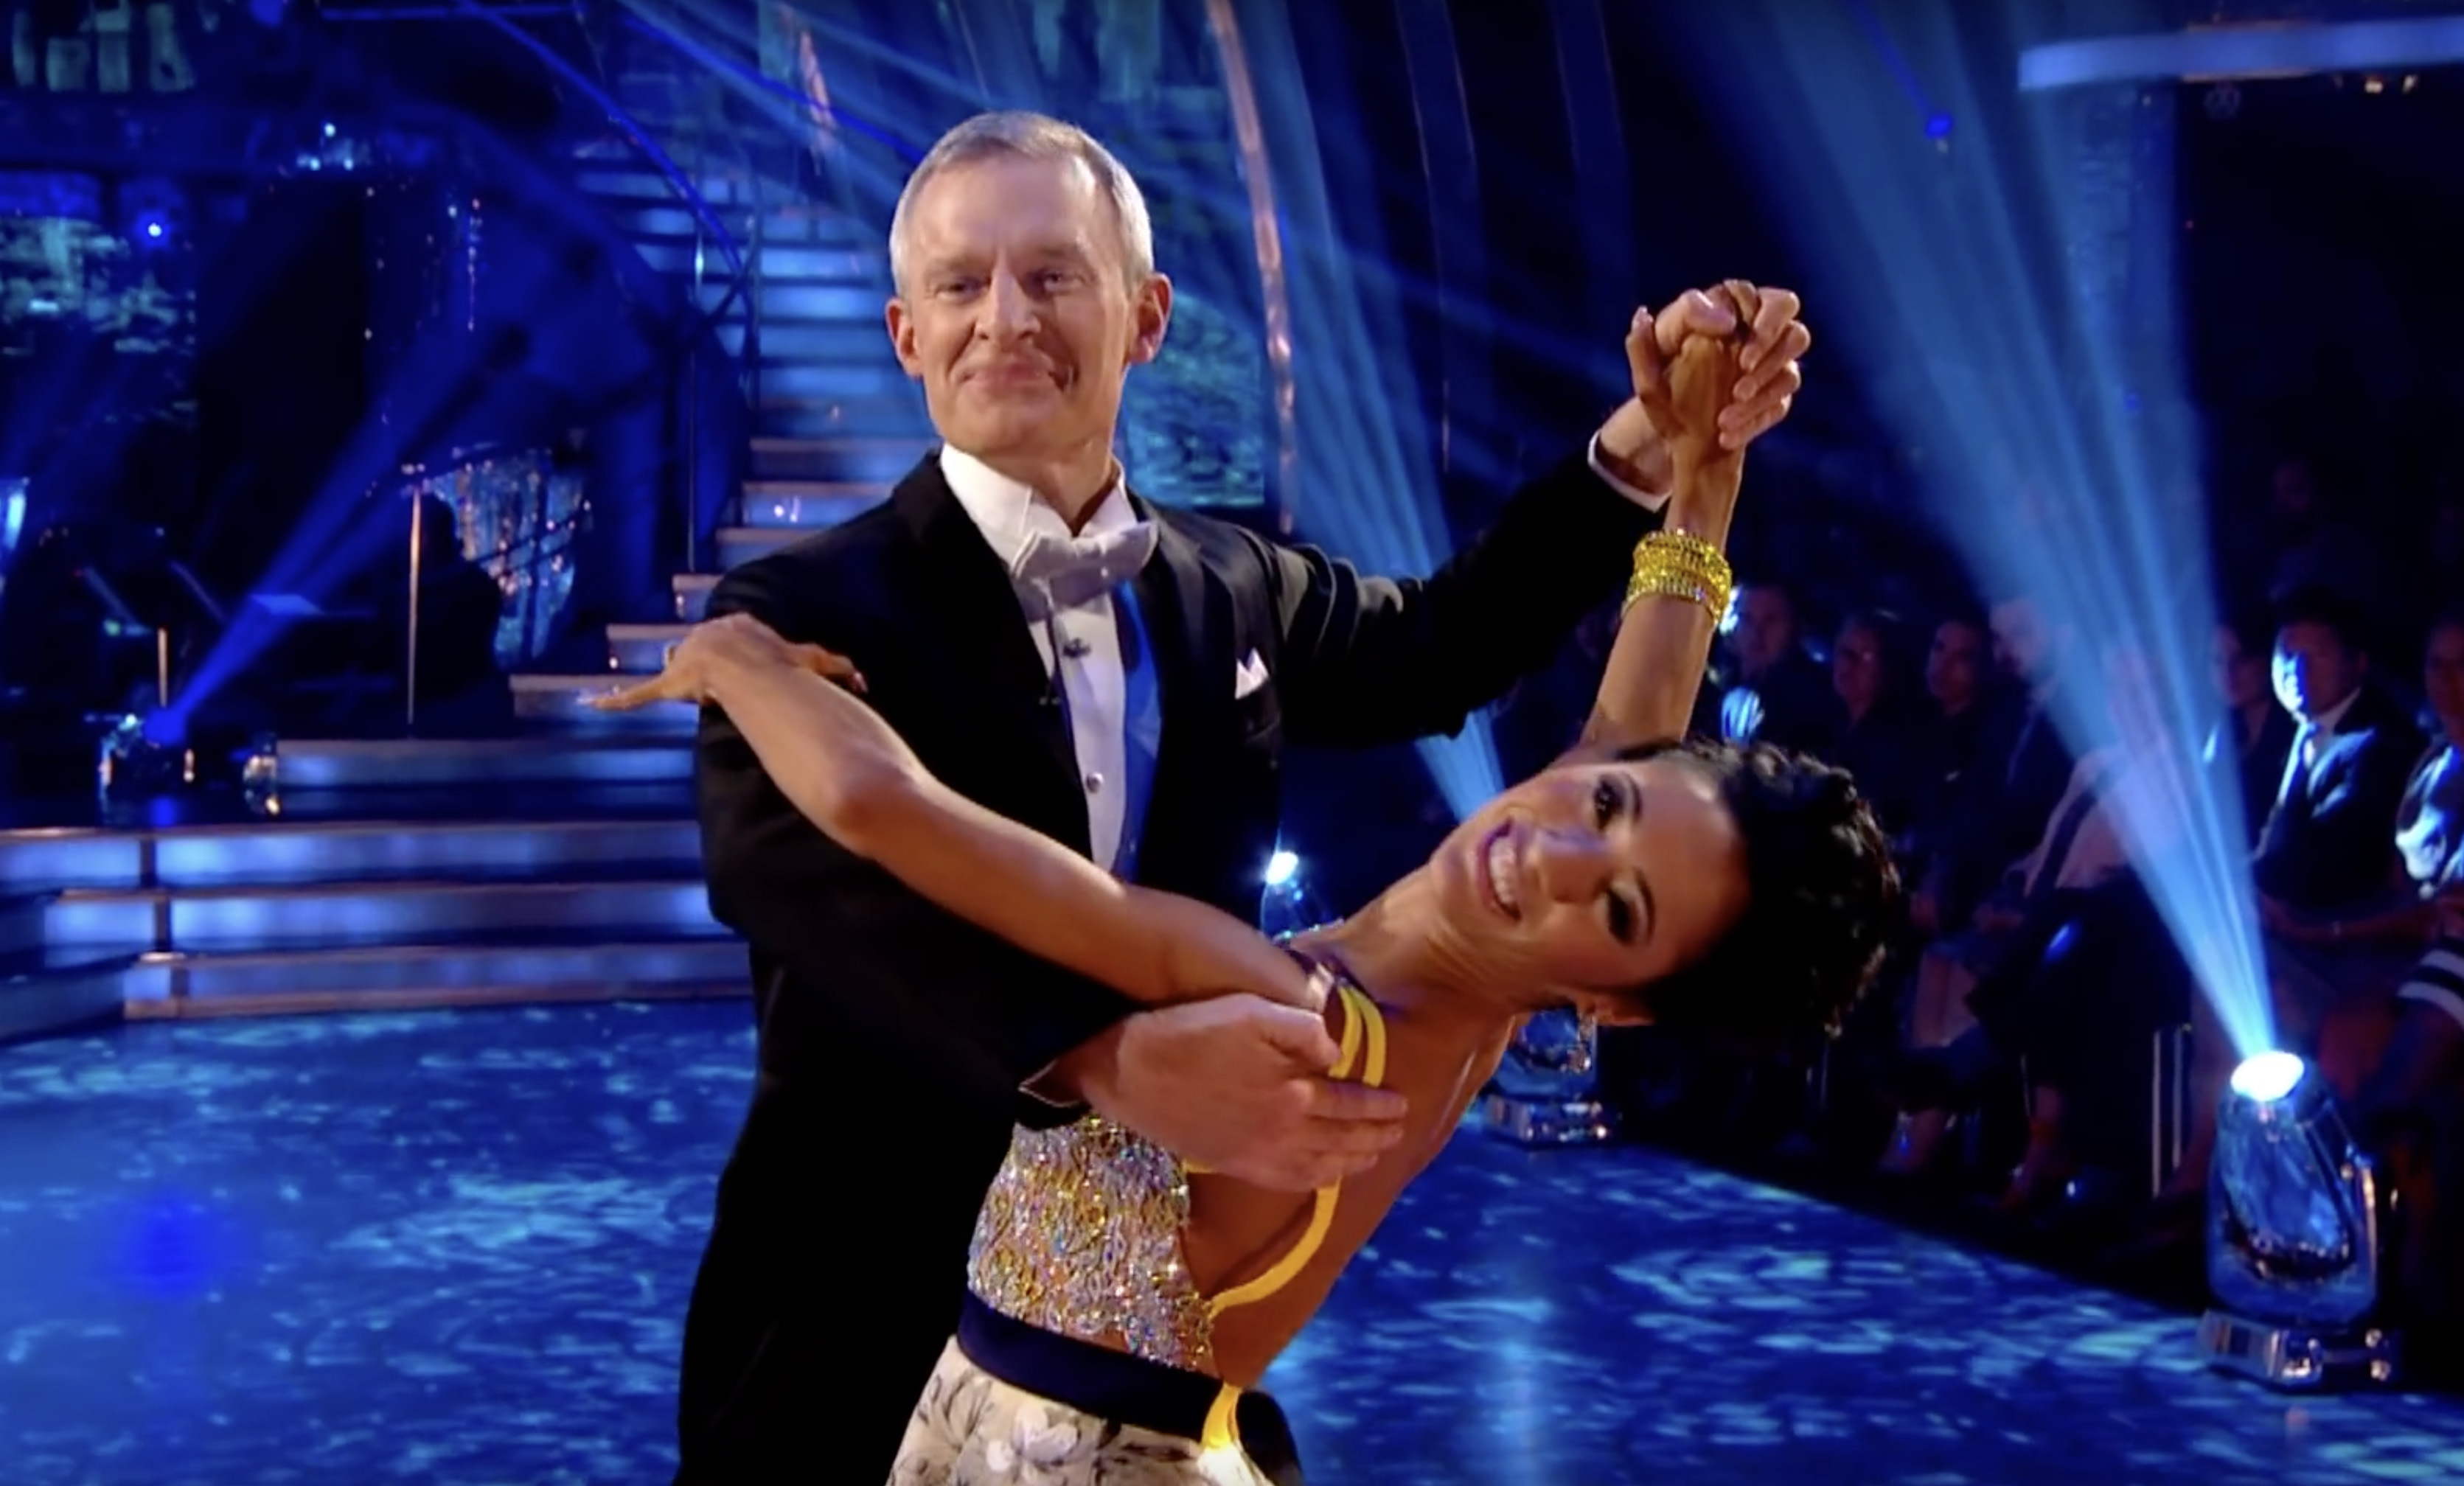 Jeremy Vine and Karen Clifton on Strictly Come Dancing 2015